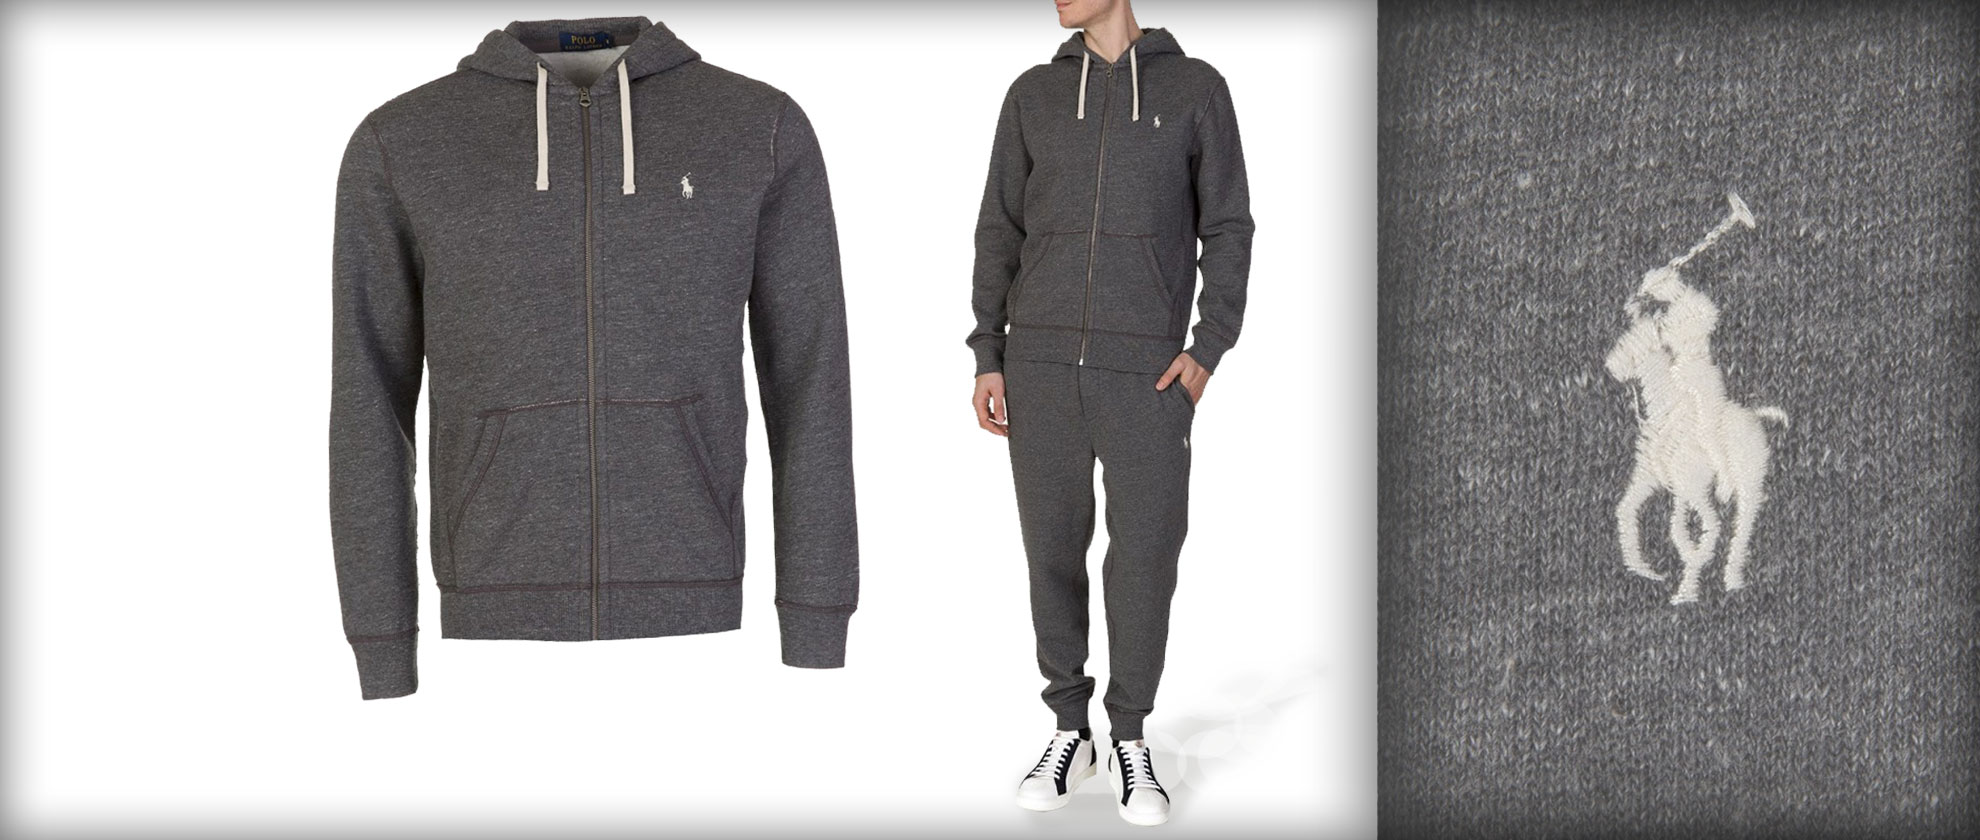 Polo Ralph Lauren Tracksuits Get a Revamp in New Collection